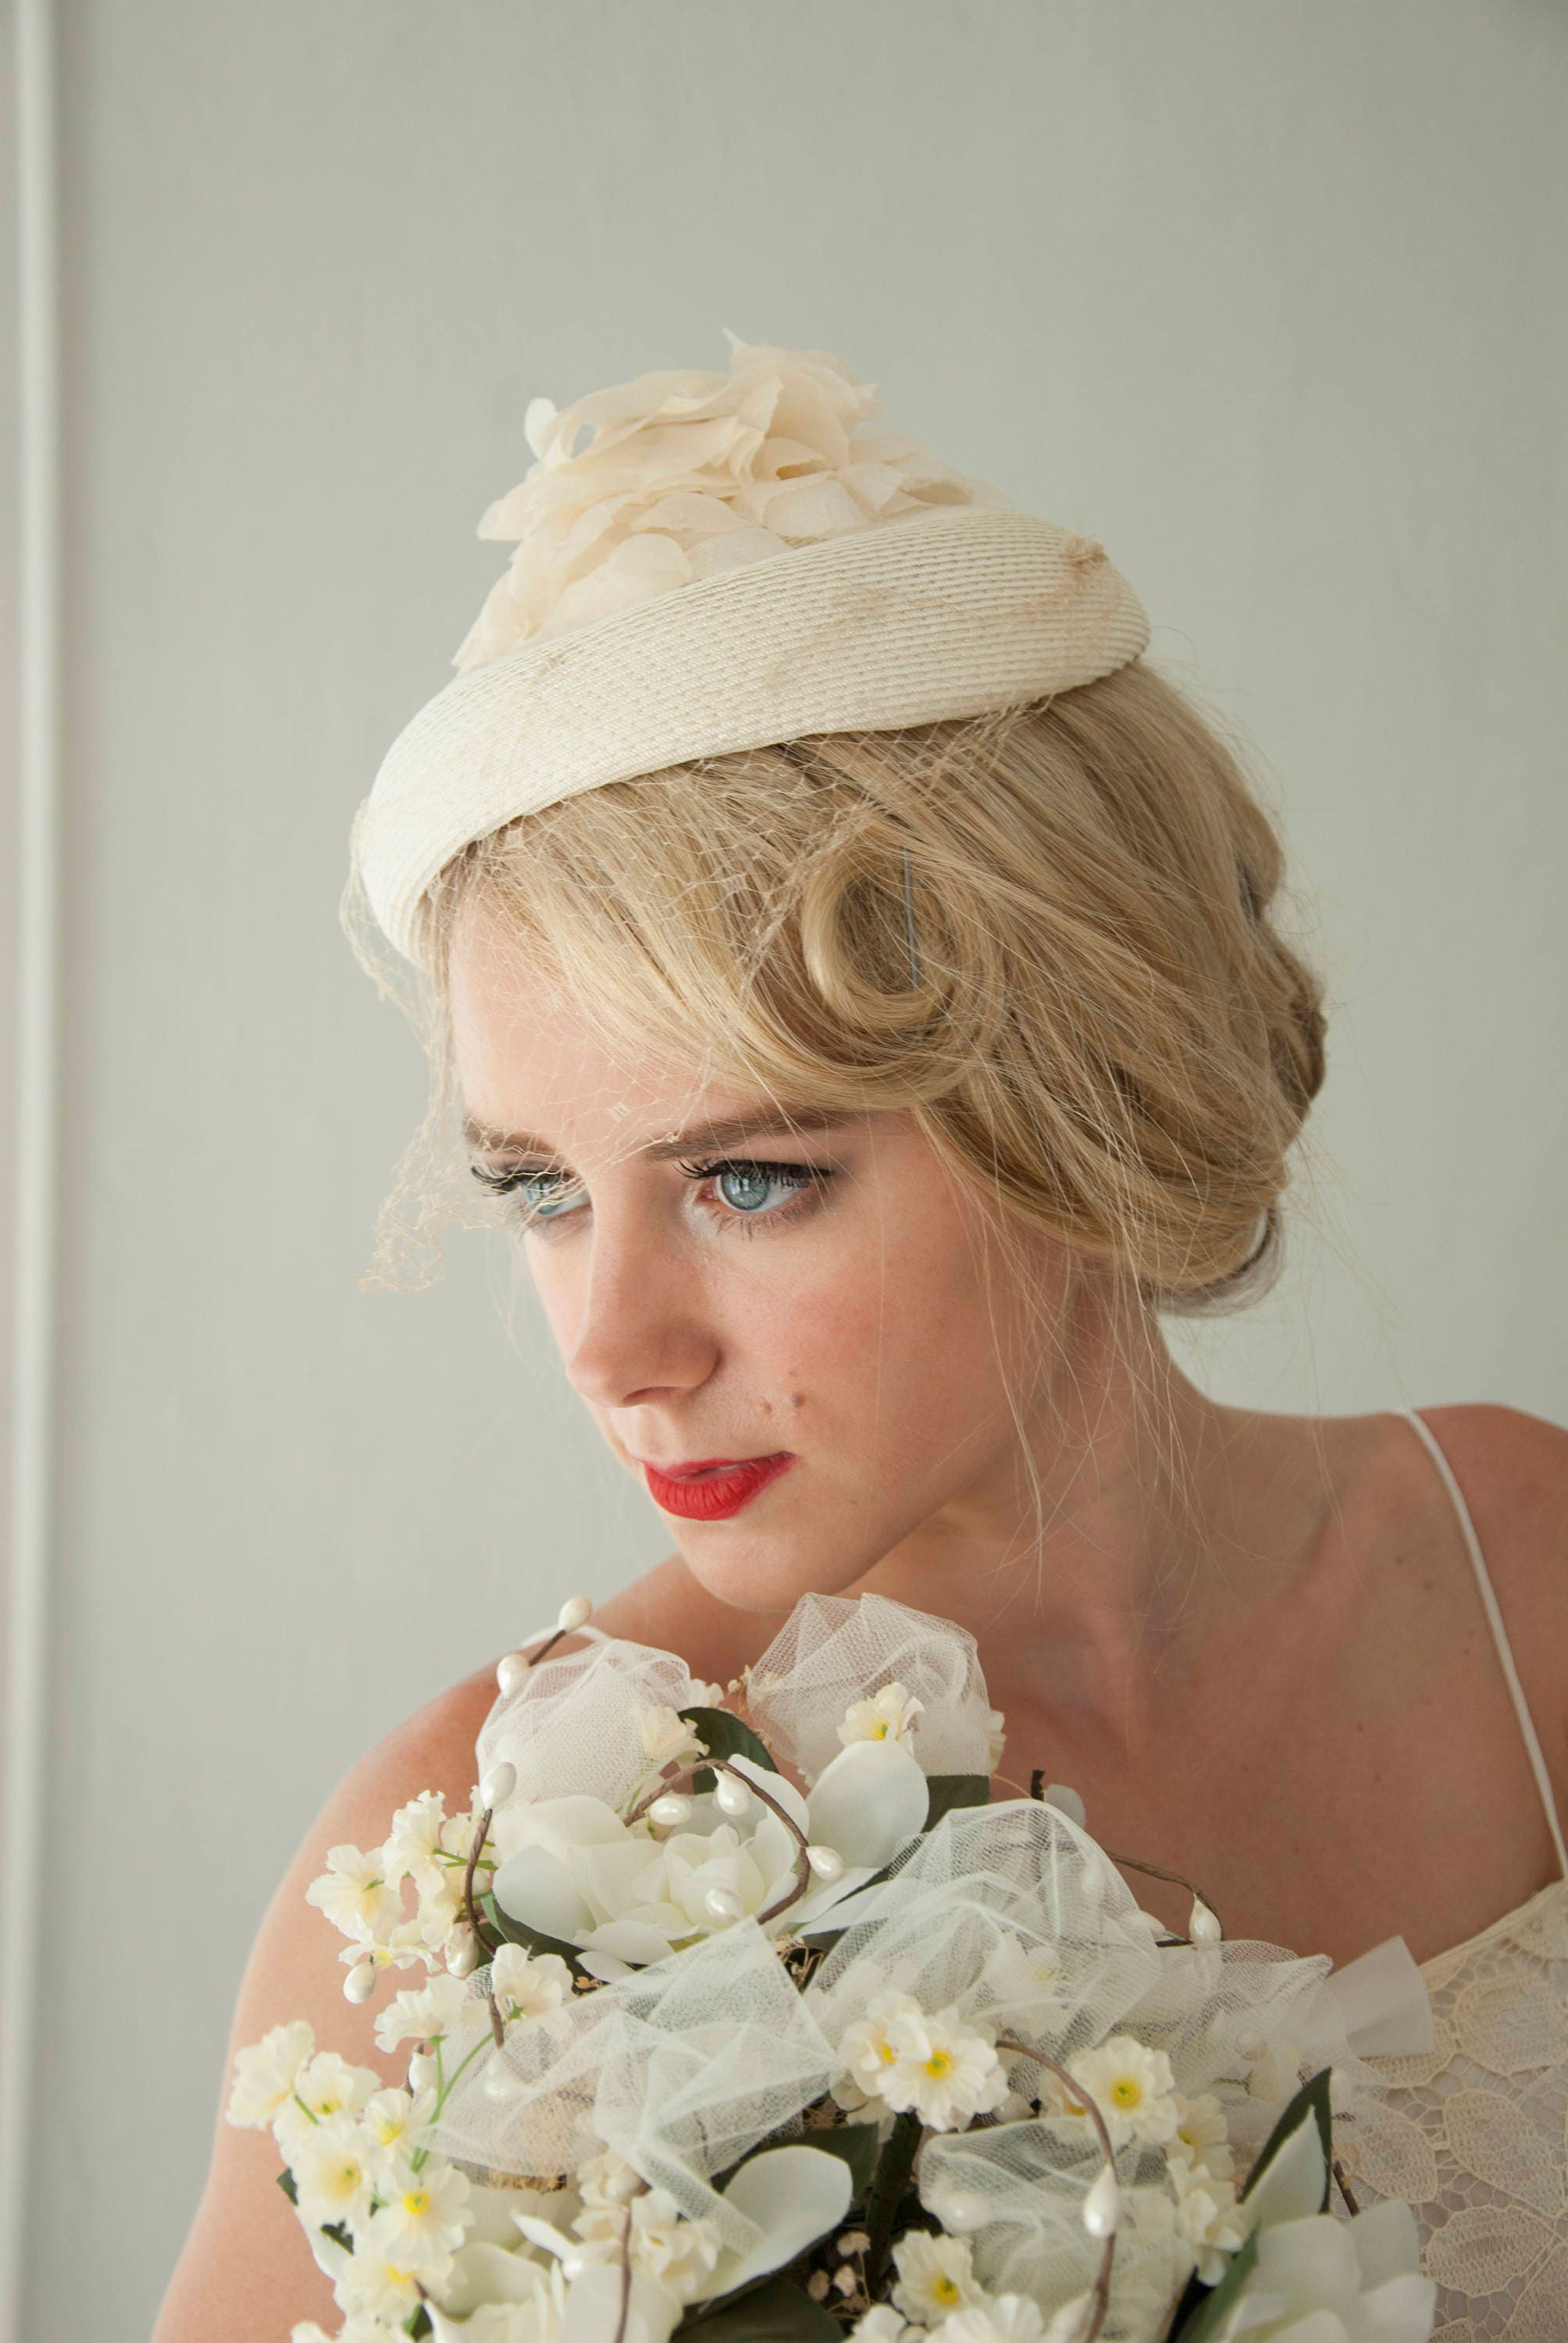 Vintage White Floral Veil Hat Organza Floral Pillbox Netting Ivory 1950s Wedding Formal Pin